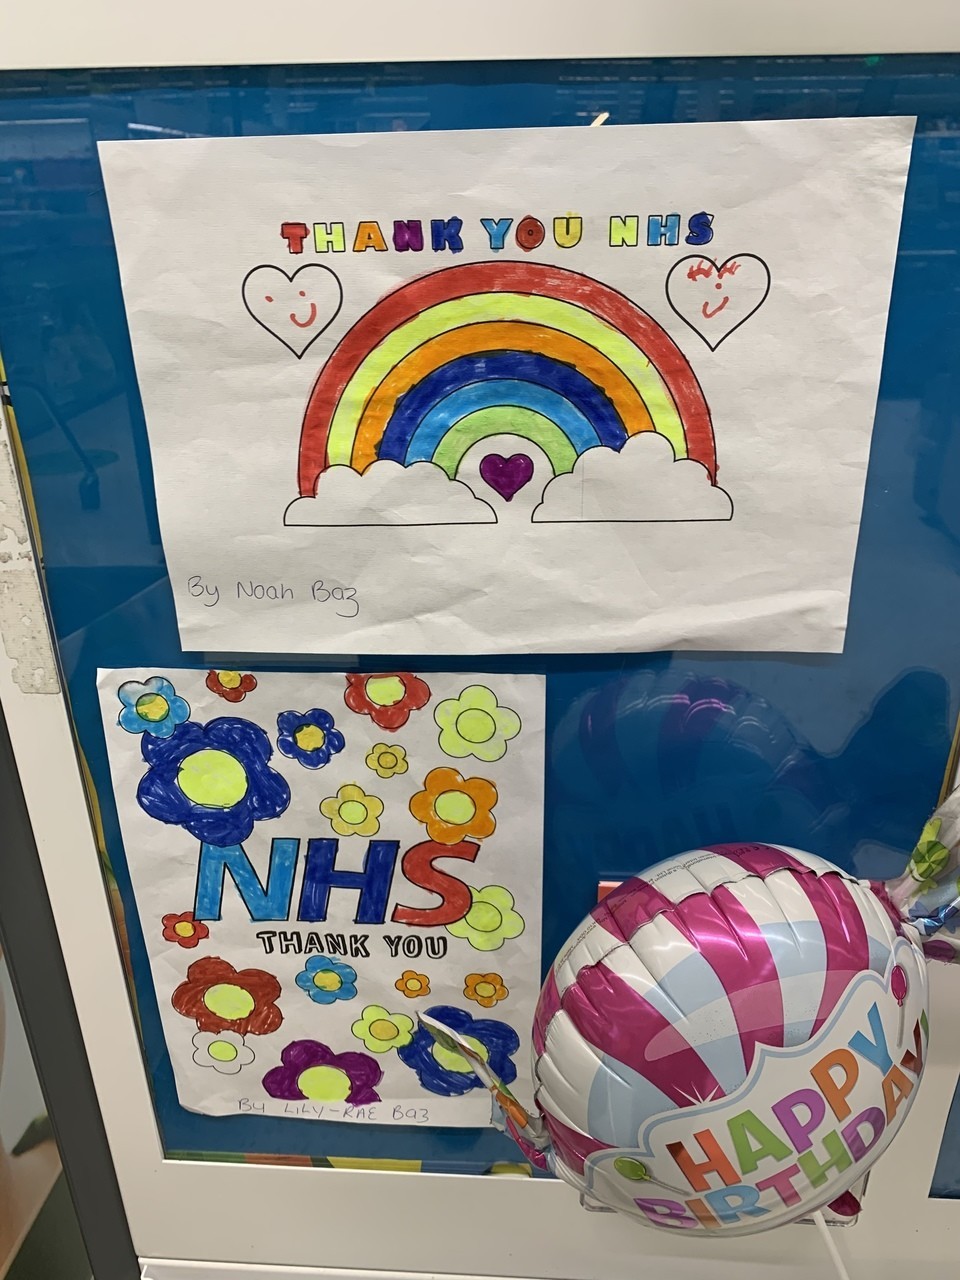 Happy 72nd birthday to the NHS | Asda Sheffield Chaucer Road